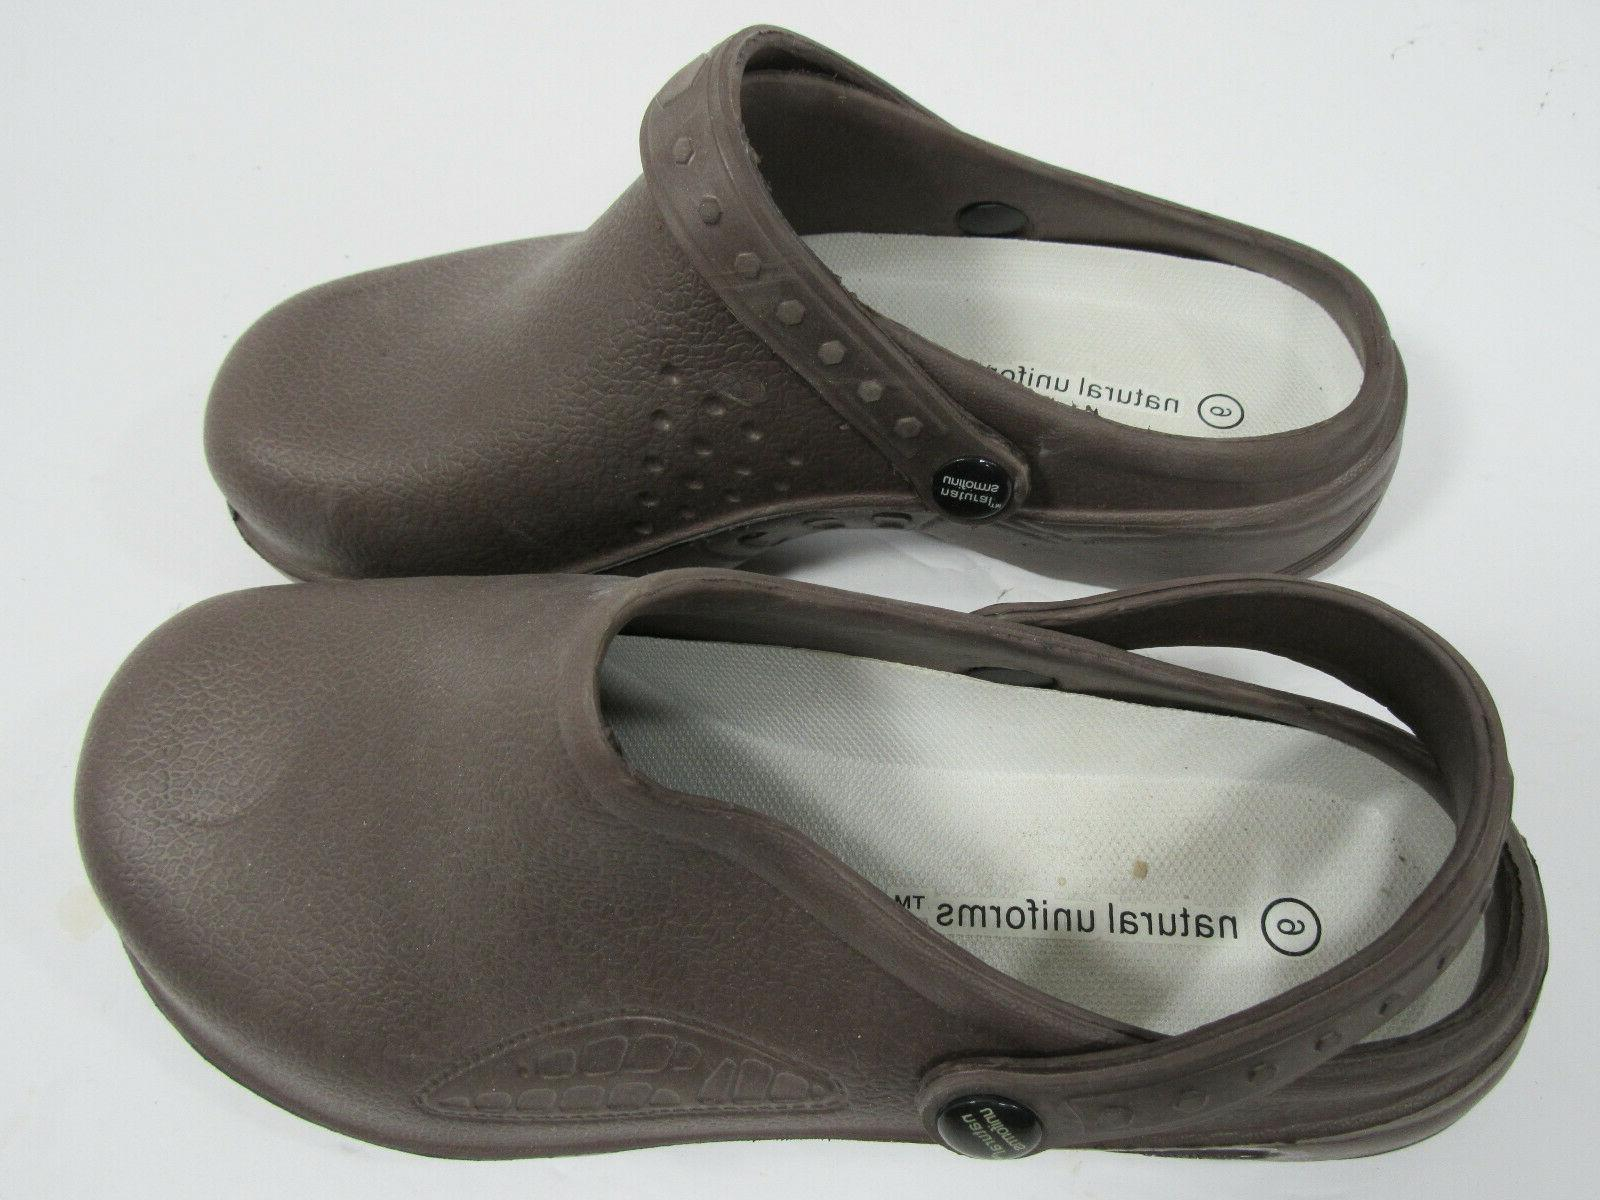 nursing nurse womens comfortable lightweight clogs shoes